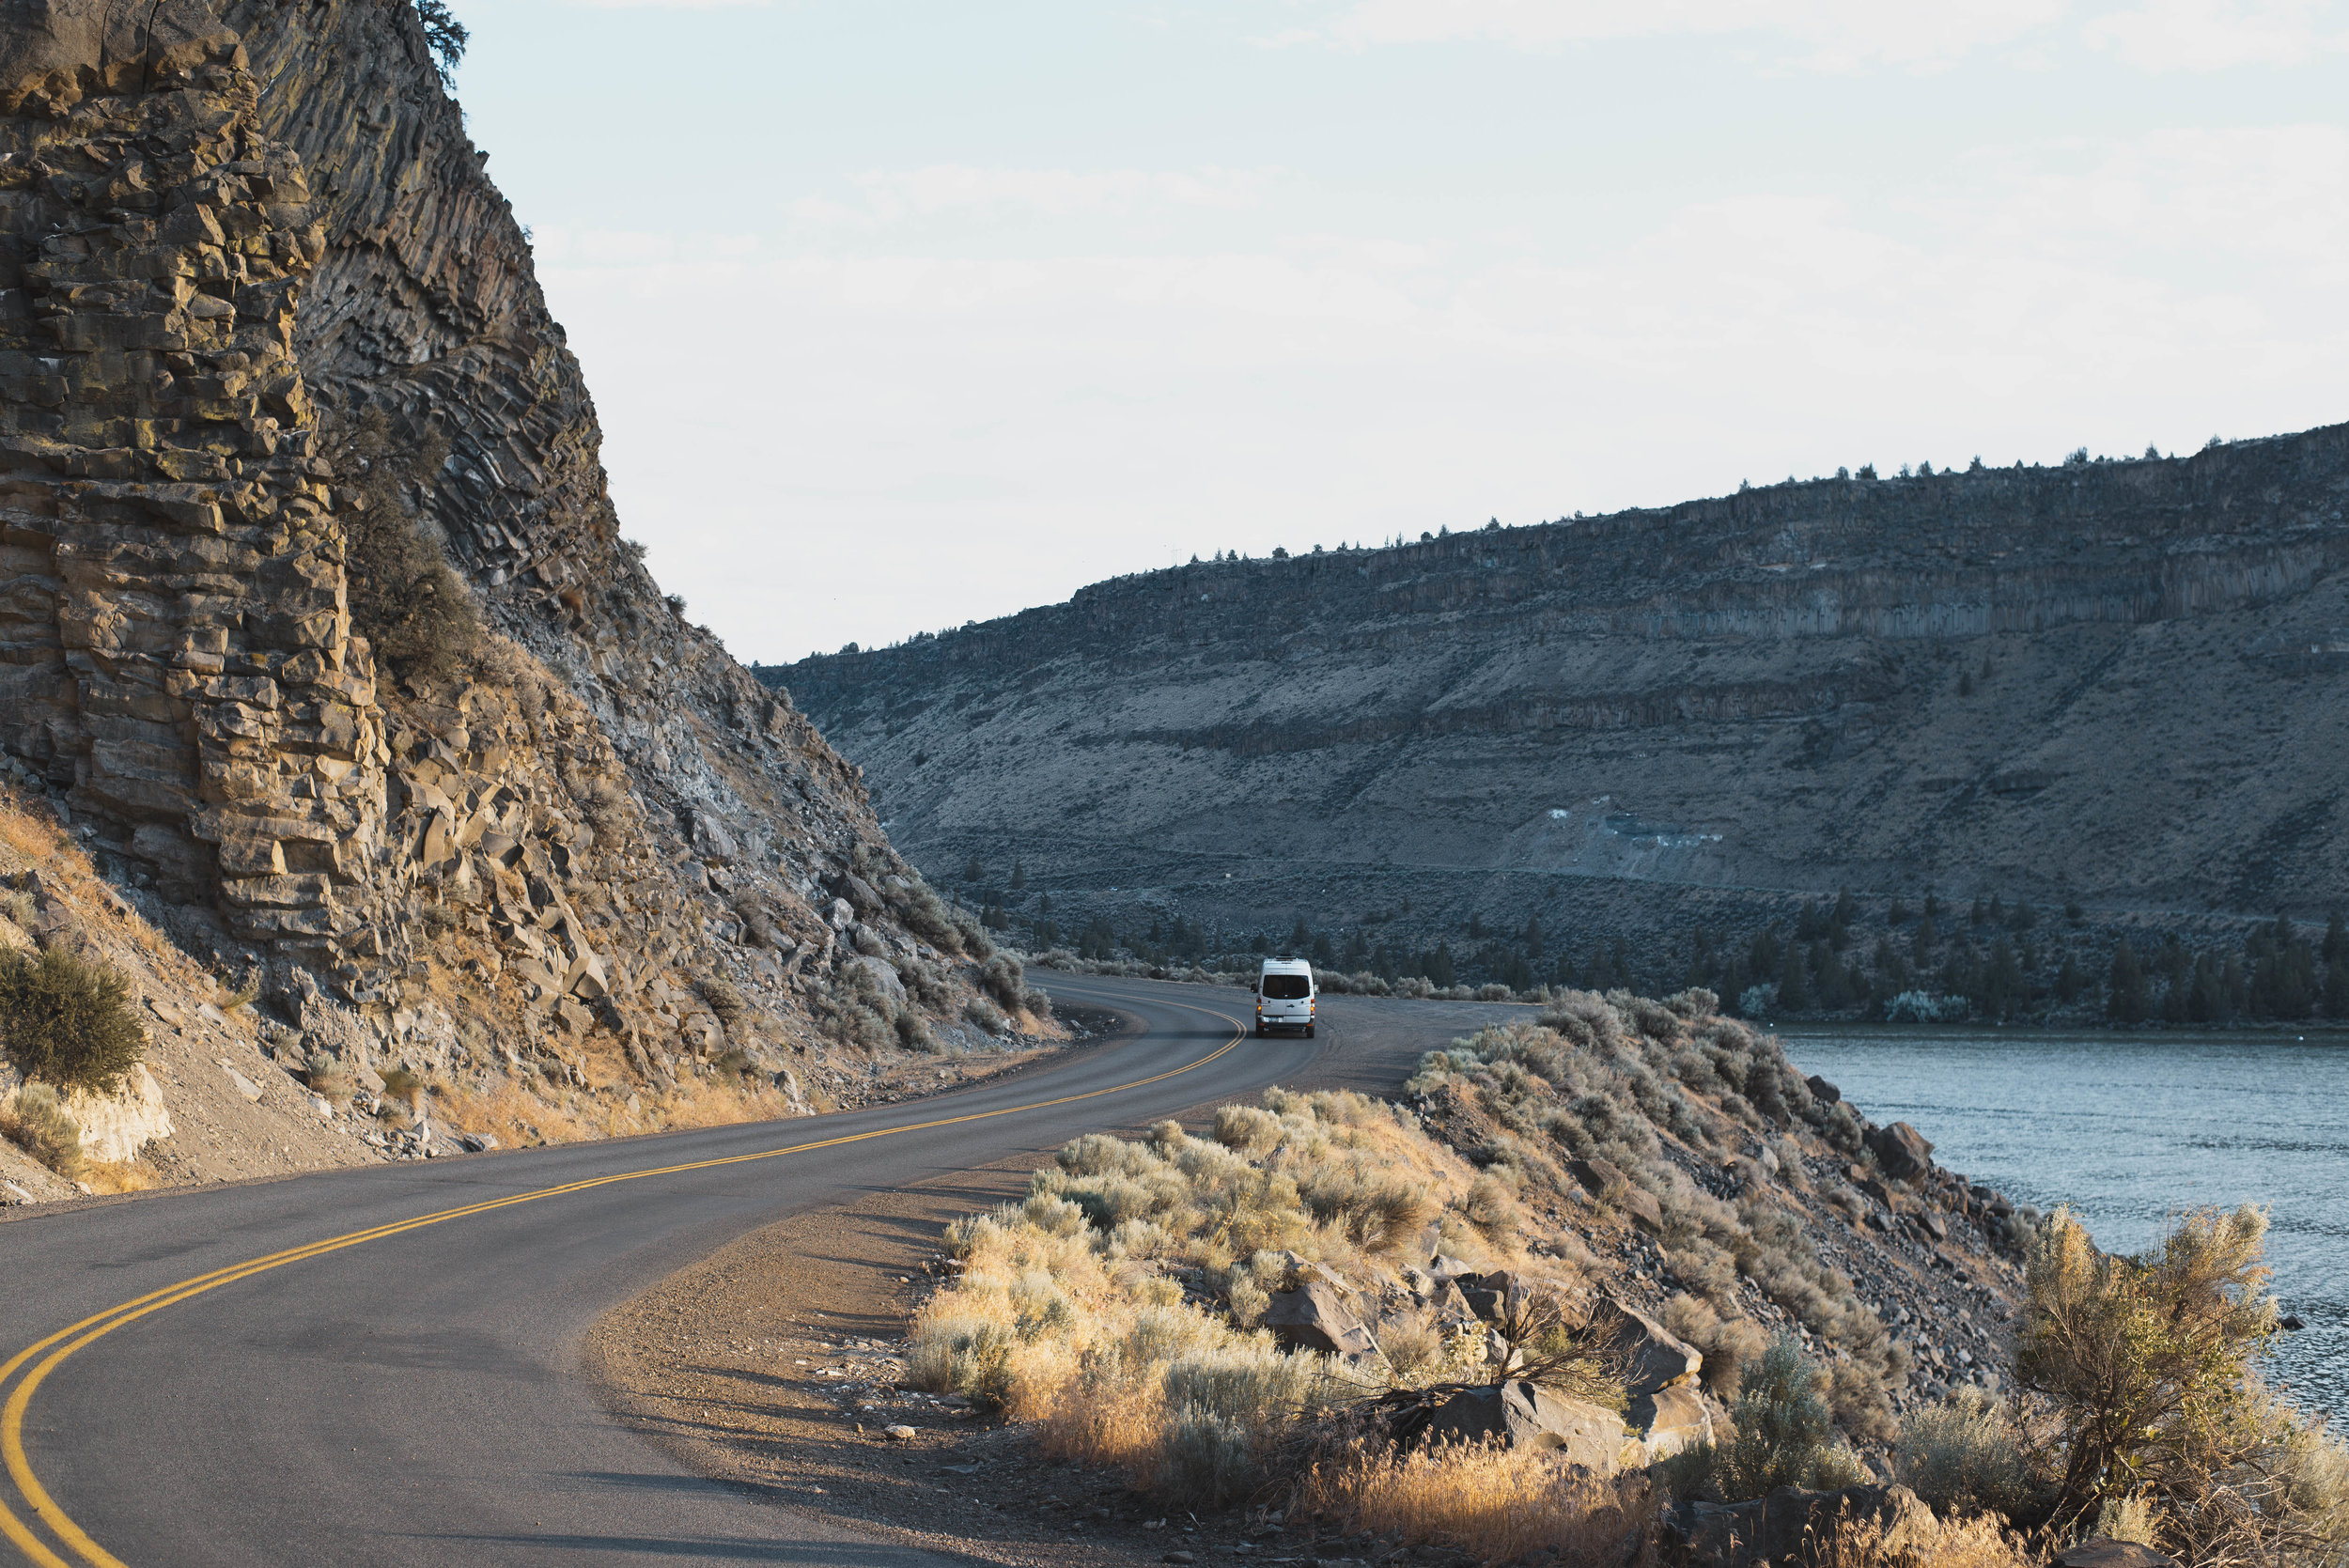 Sunset at The Cove Palisades State Park in Central Oregon